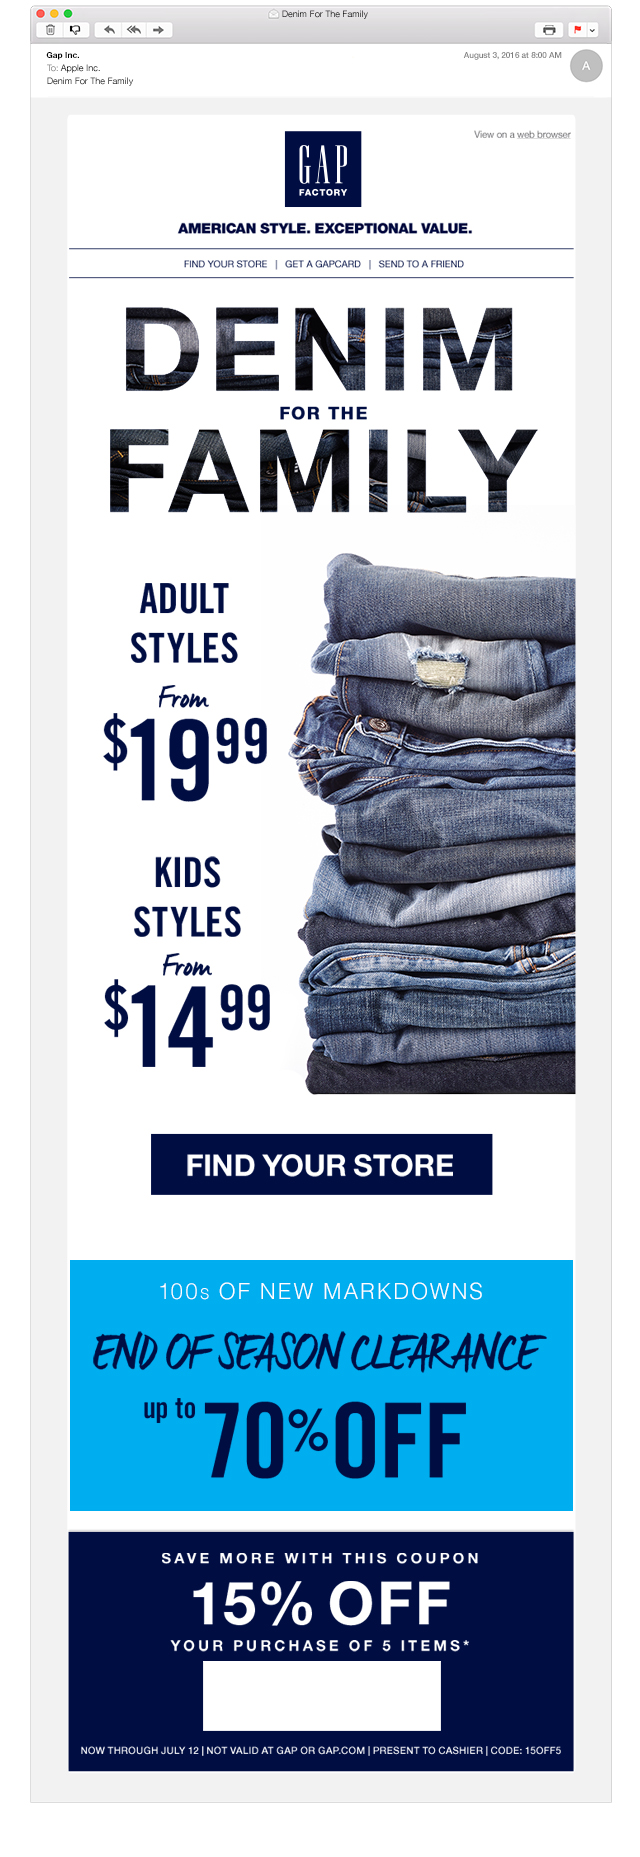 GAP+EMAILS_Denim.jpg